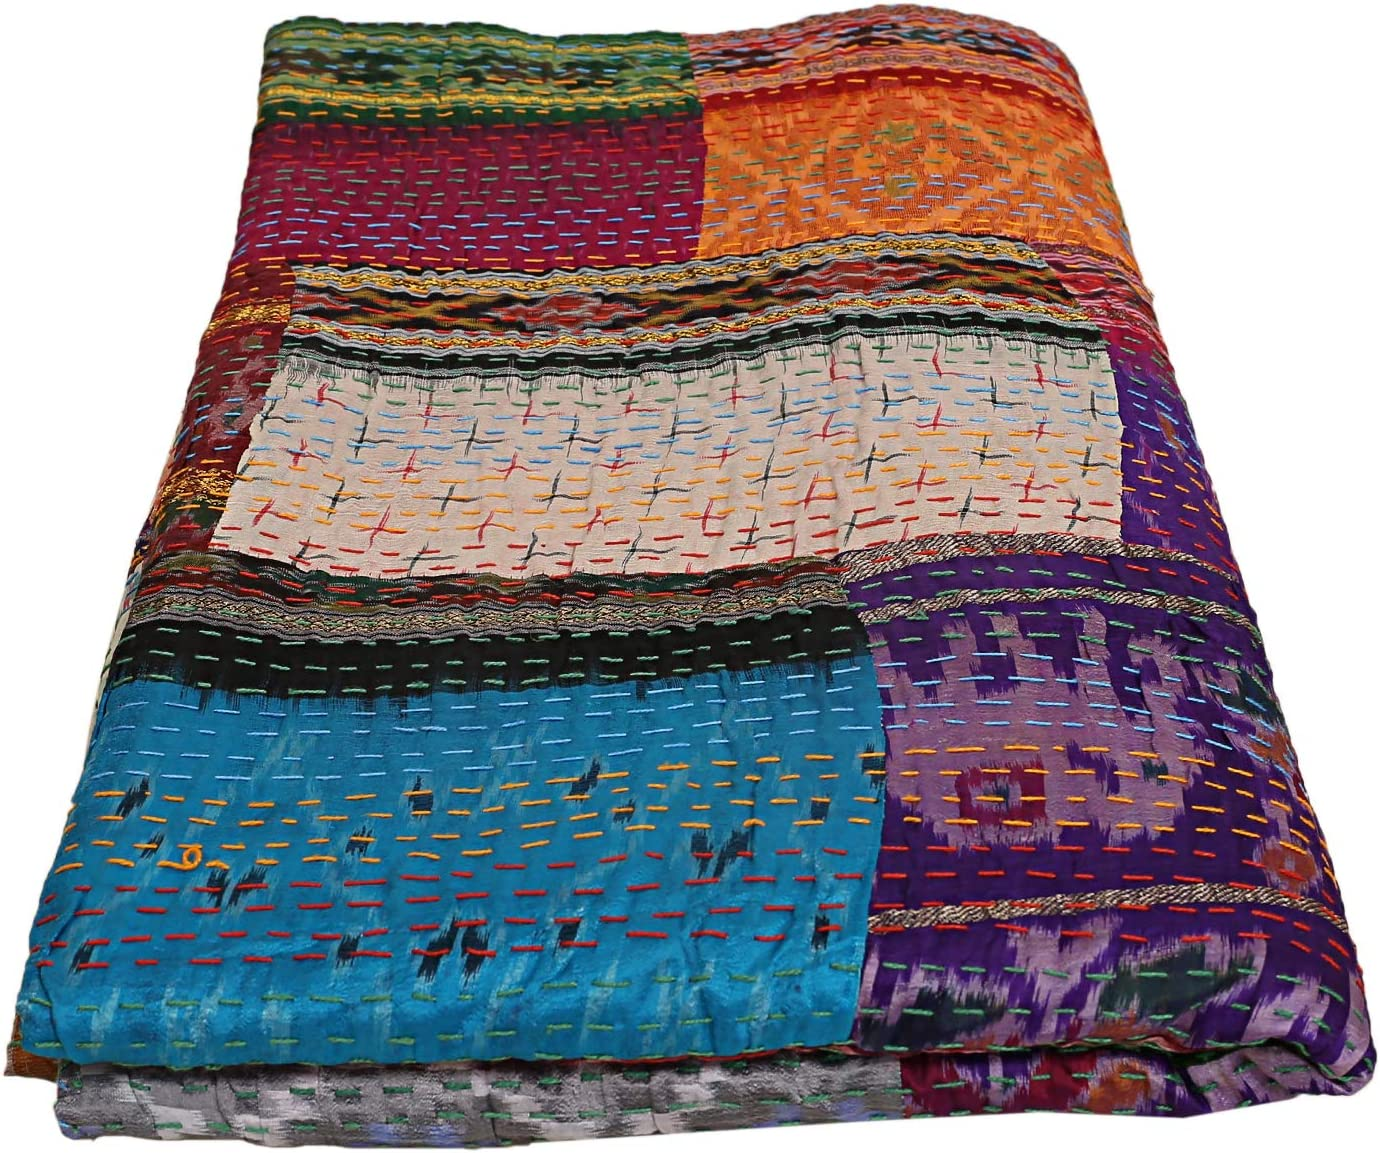 Indian-Shoppers Bohemian Pure Silk Kantha Blanket Hand Quilted Silk Throw Twin Bedding Decor Indian Kantha Quilts Handmade Reversible Vintage Saree Twin Patchwork Bedroom Coverlets Hippie Multi Patch